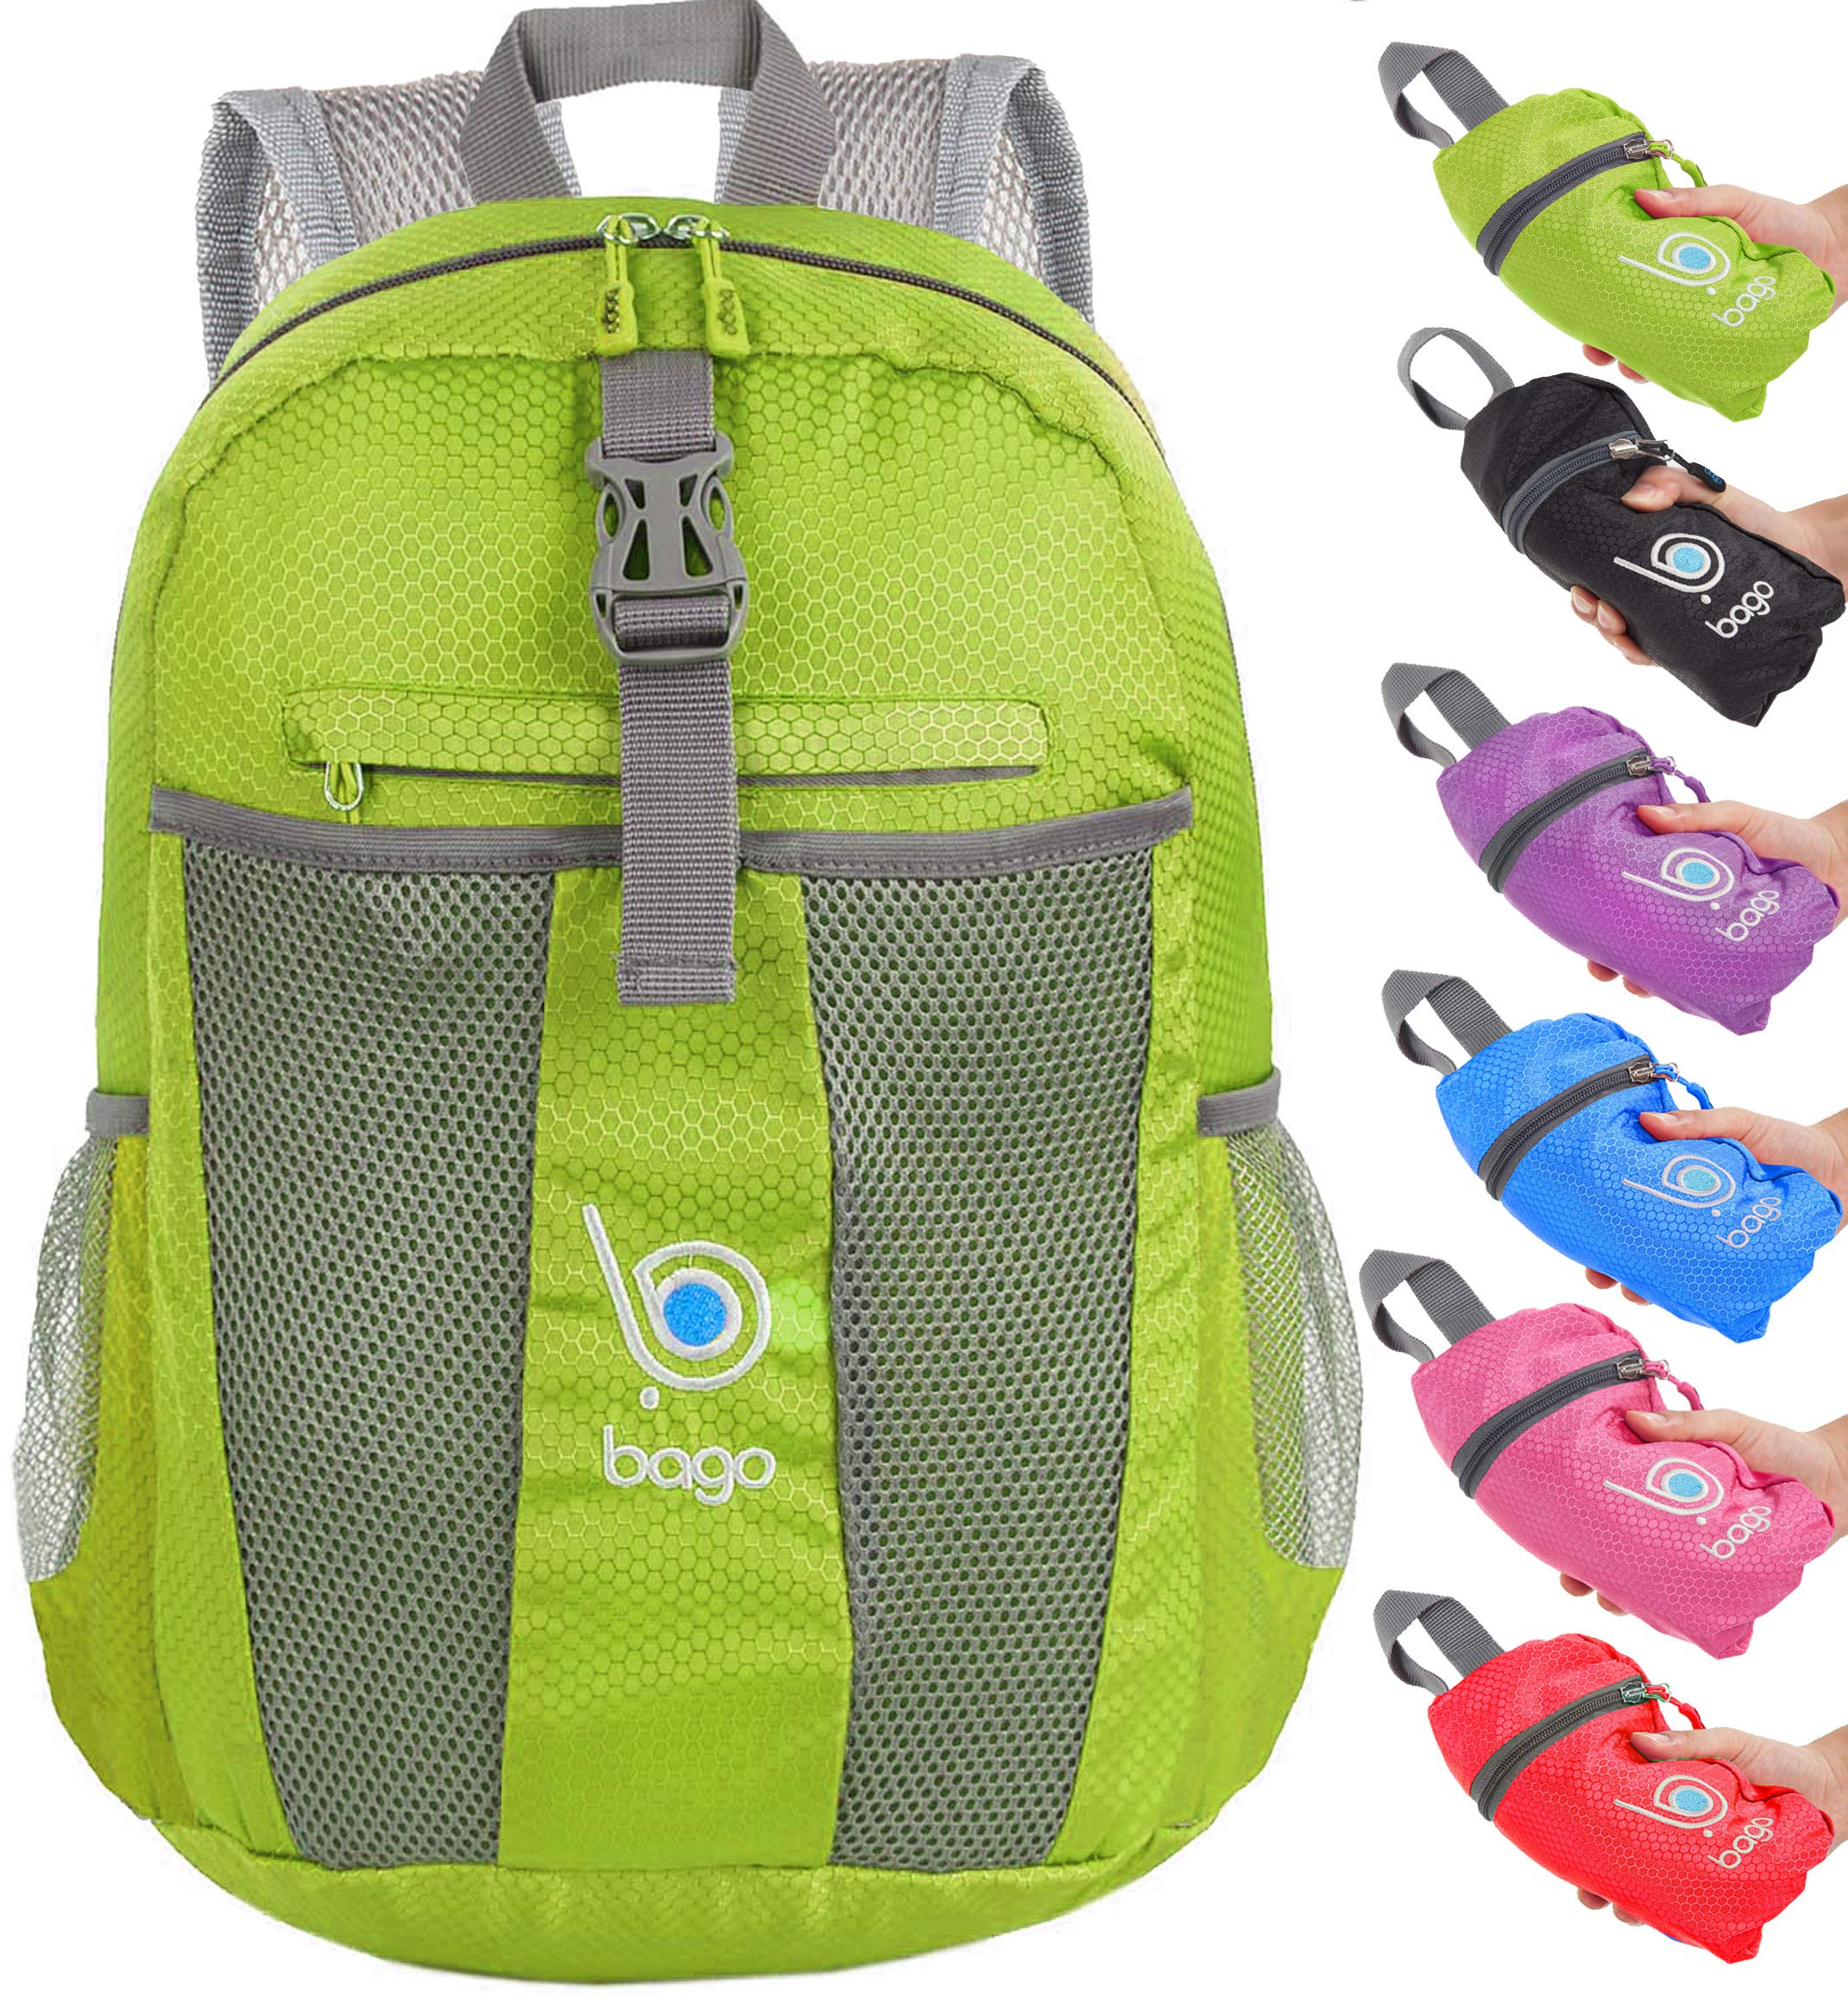 fac6c2cea002 bago 25L Lightweight Packable Backpack - Water Resistant Travel Hiking  Foldable Camping Outdoor Backpack product image